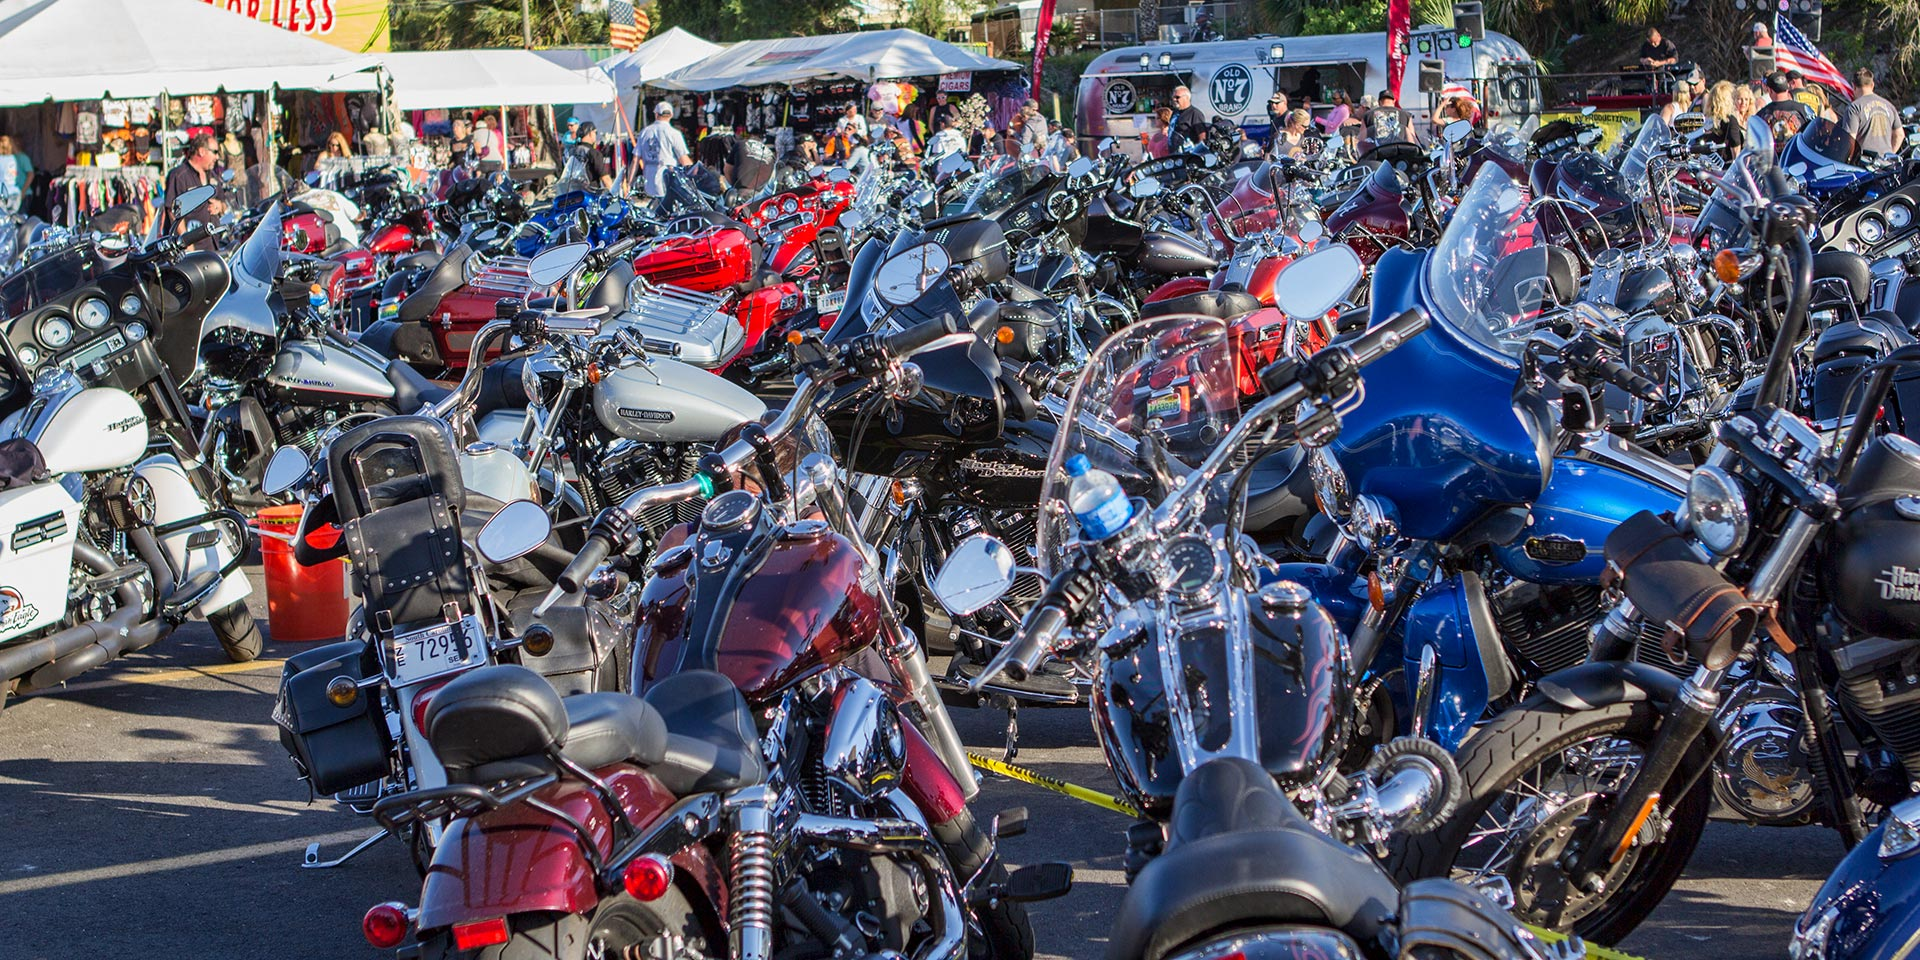 Panama City Beach Motorcycle Rally 2018 Venues